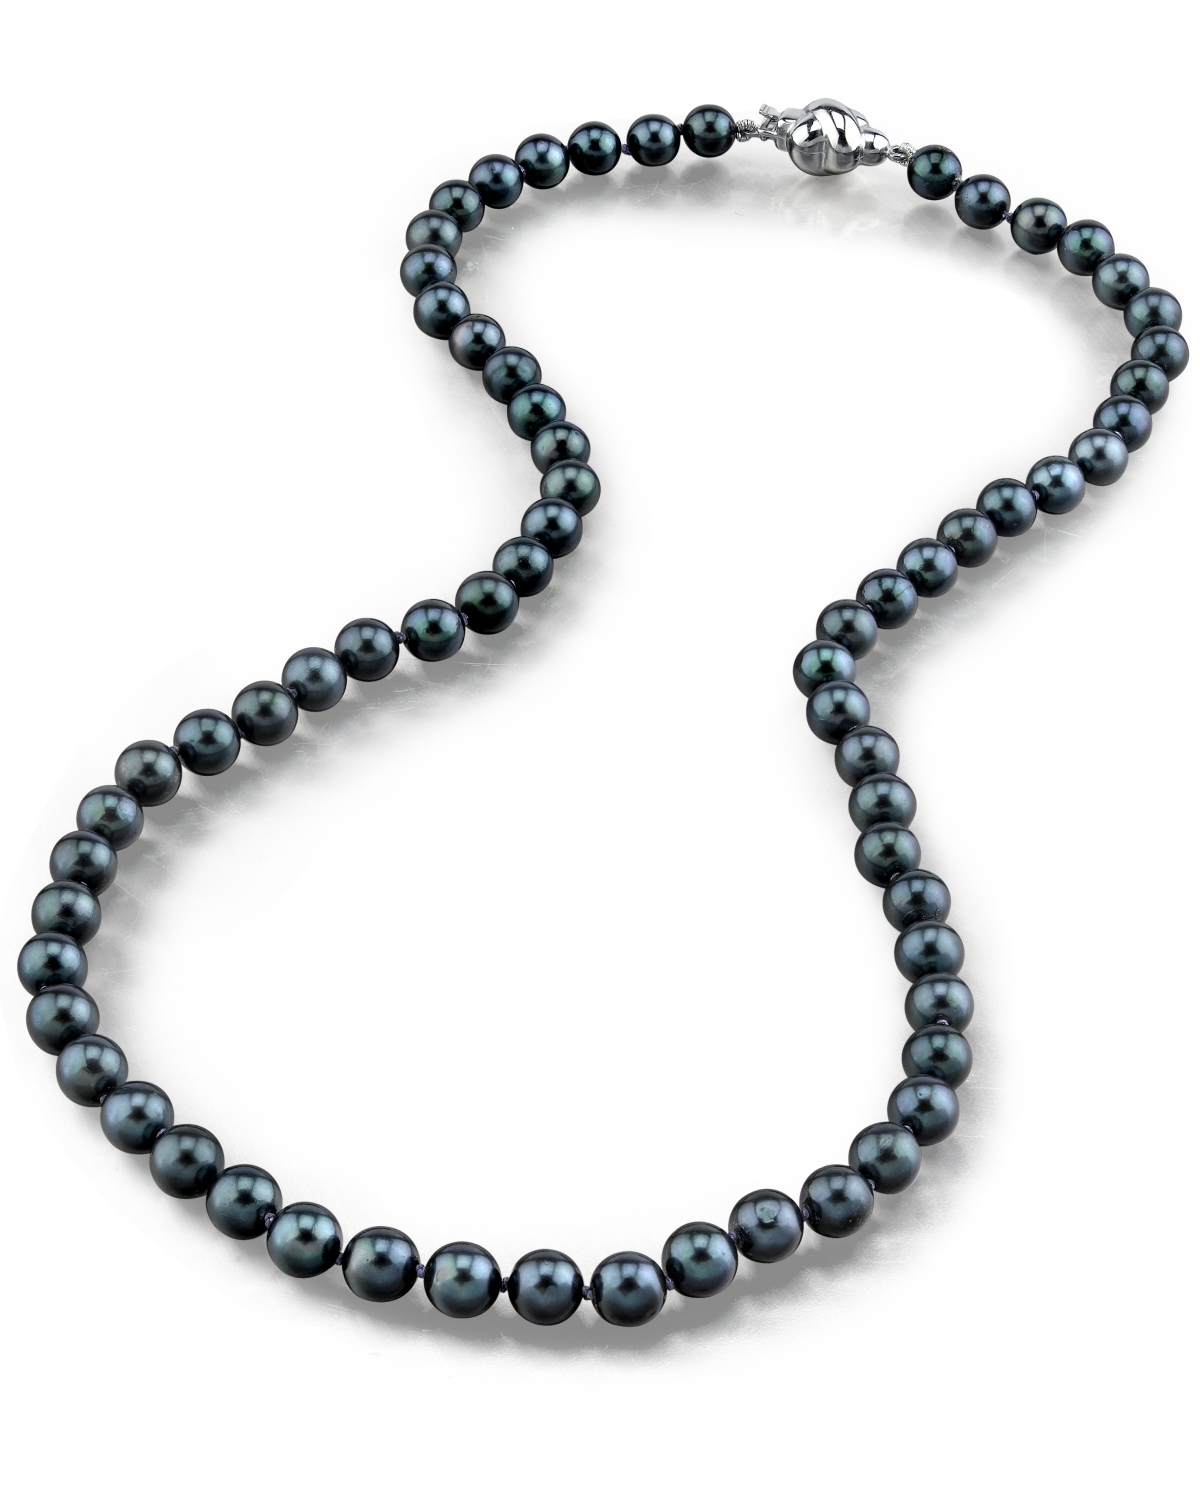 1200x1500 5.0 5.5mm Japanese Akoya Black Pearl Necklace